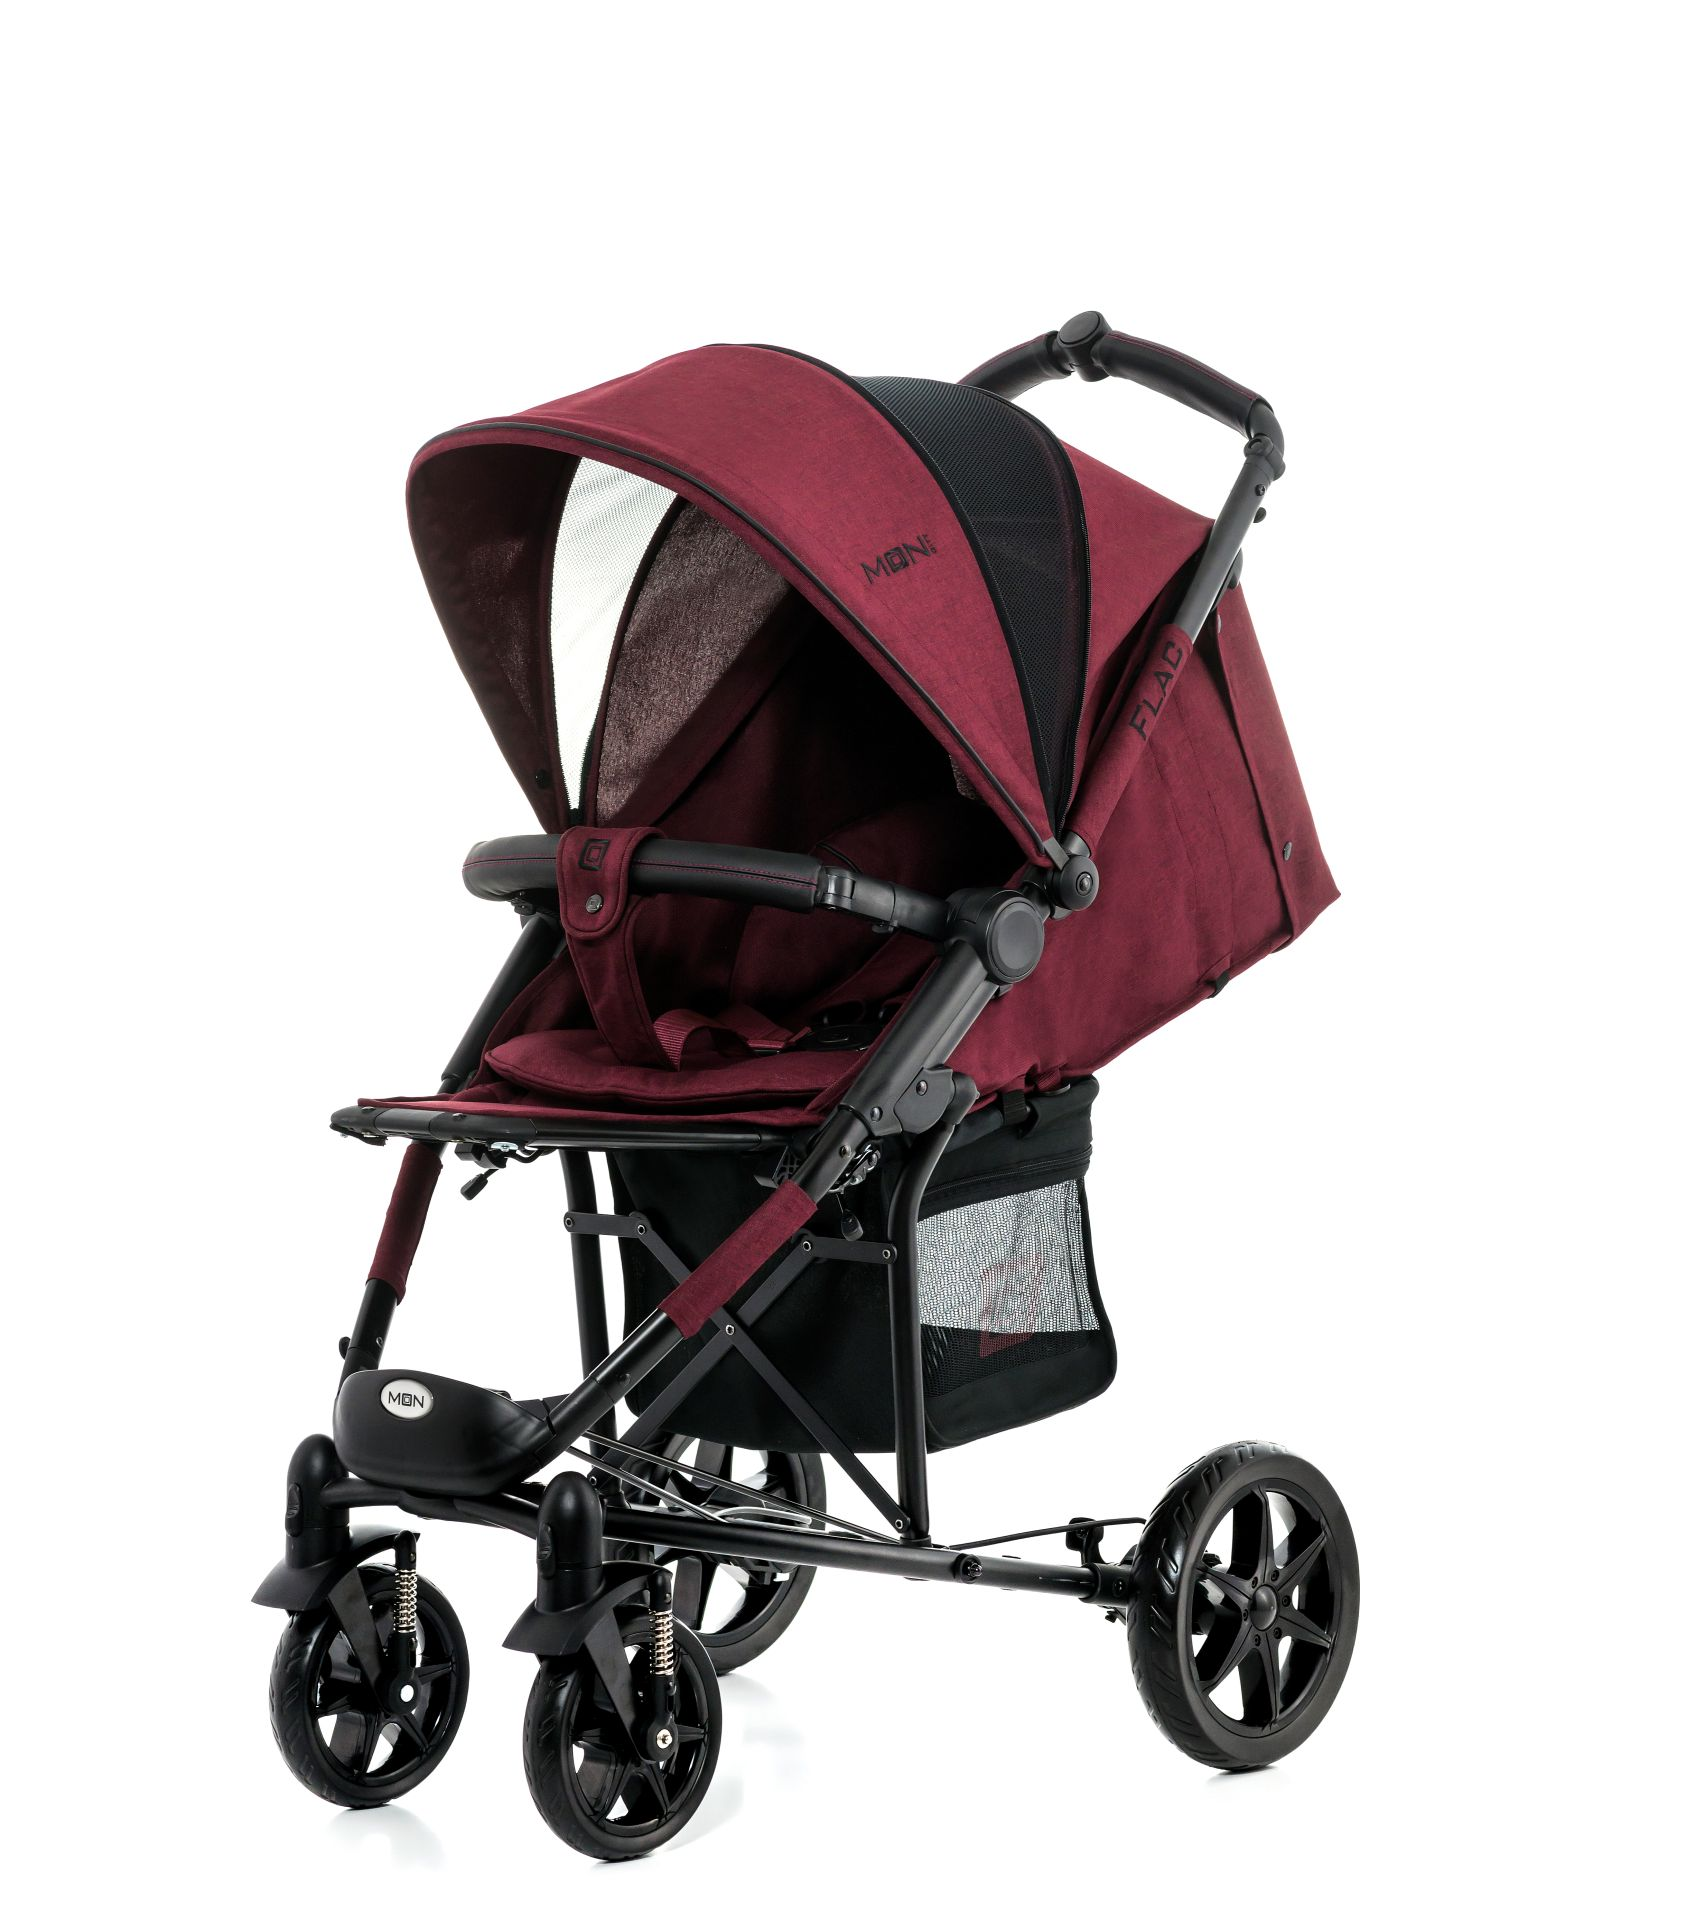 moon buggy flac 2017 bordeaux melange buy at kidsroom strollers. Black Bedroom Furniture Sets. Home Design Ideas